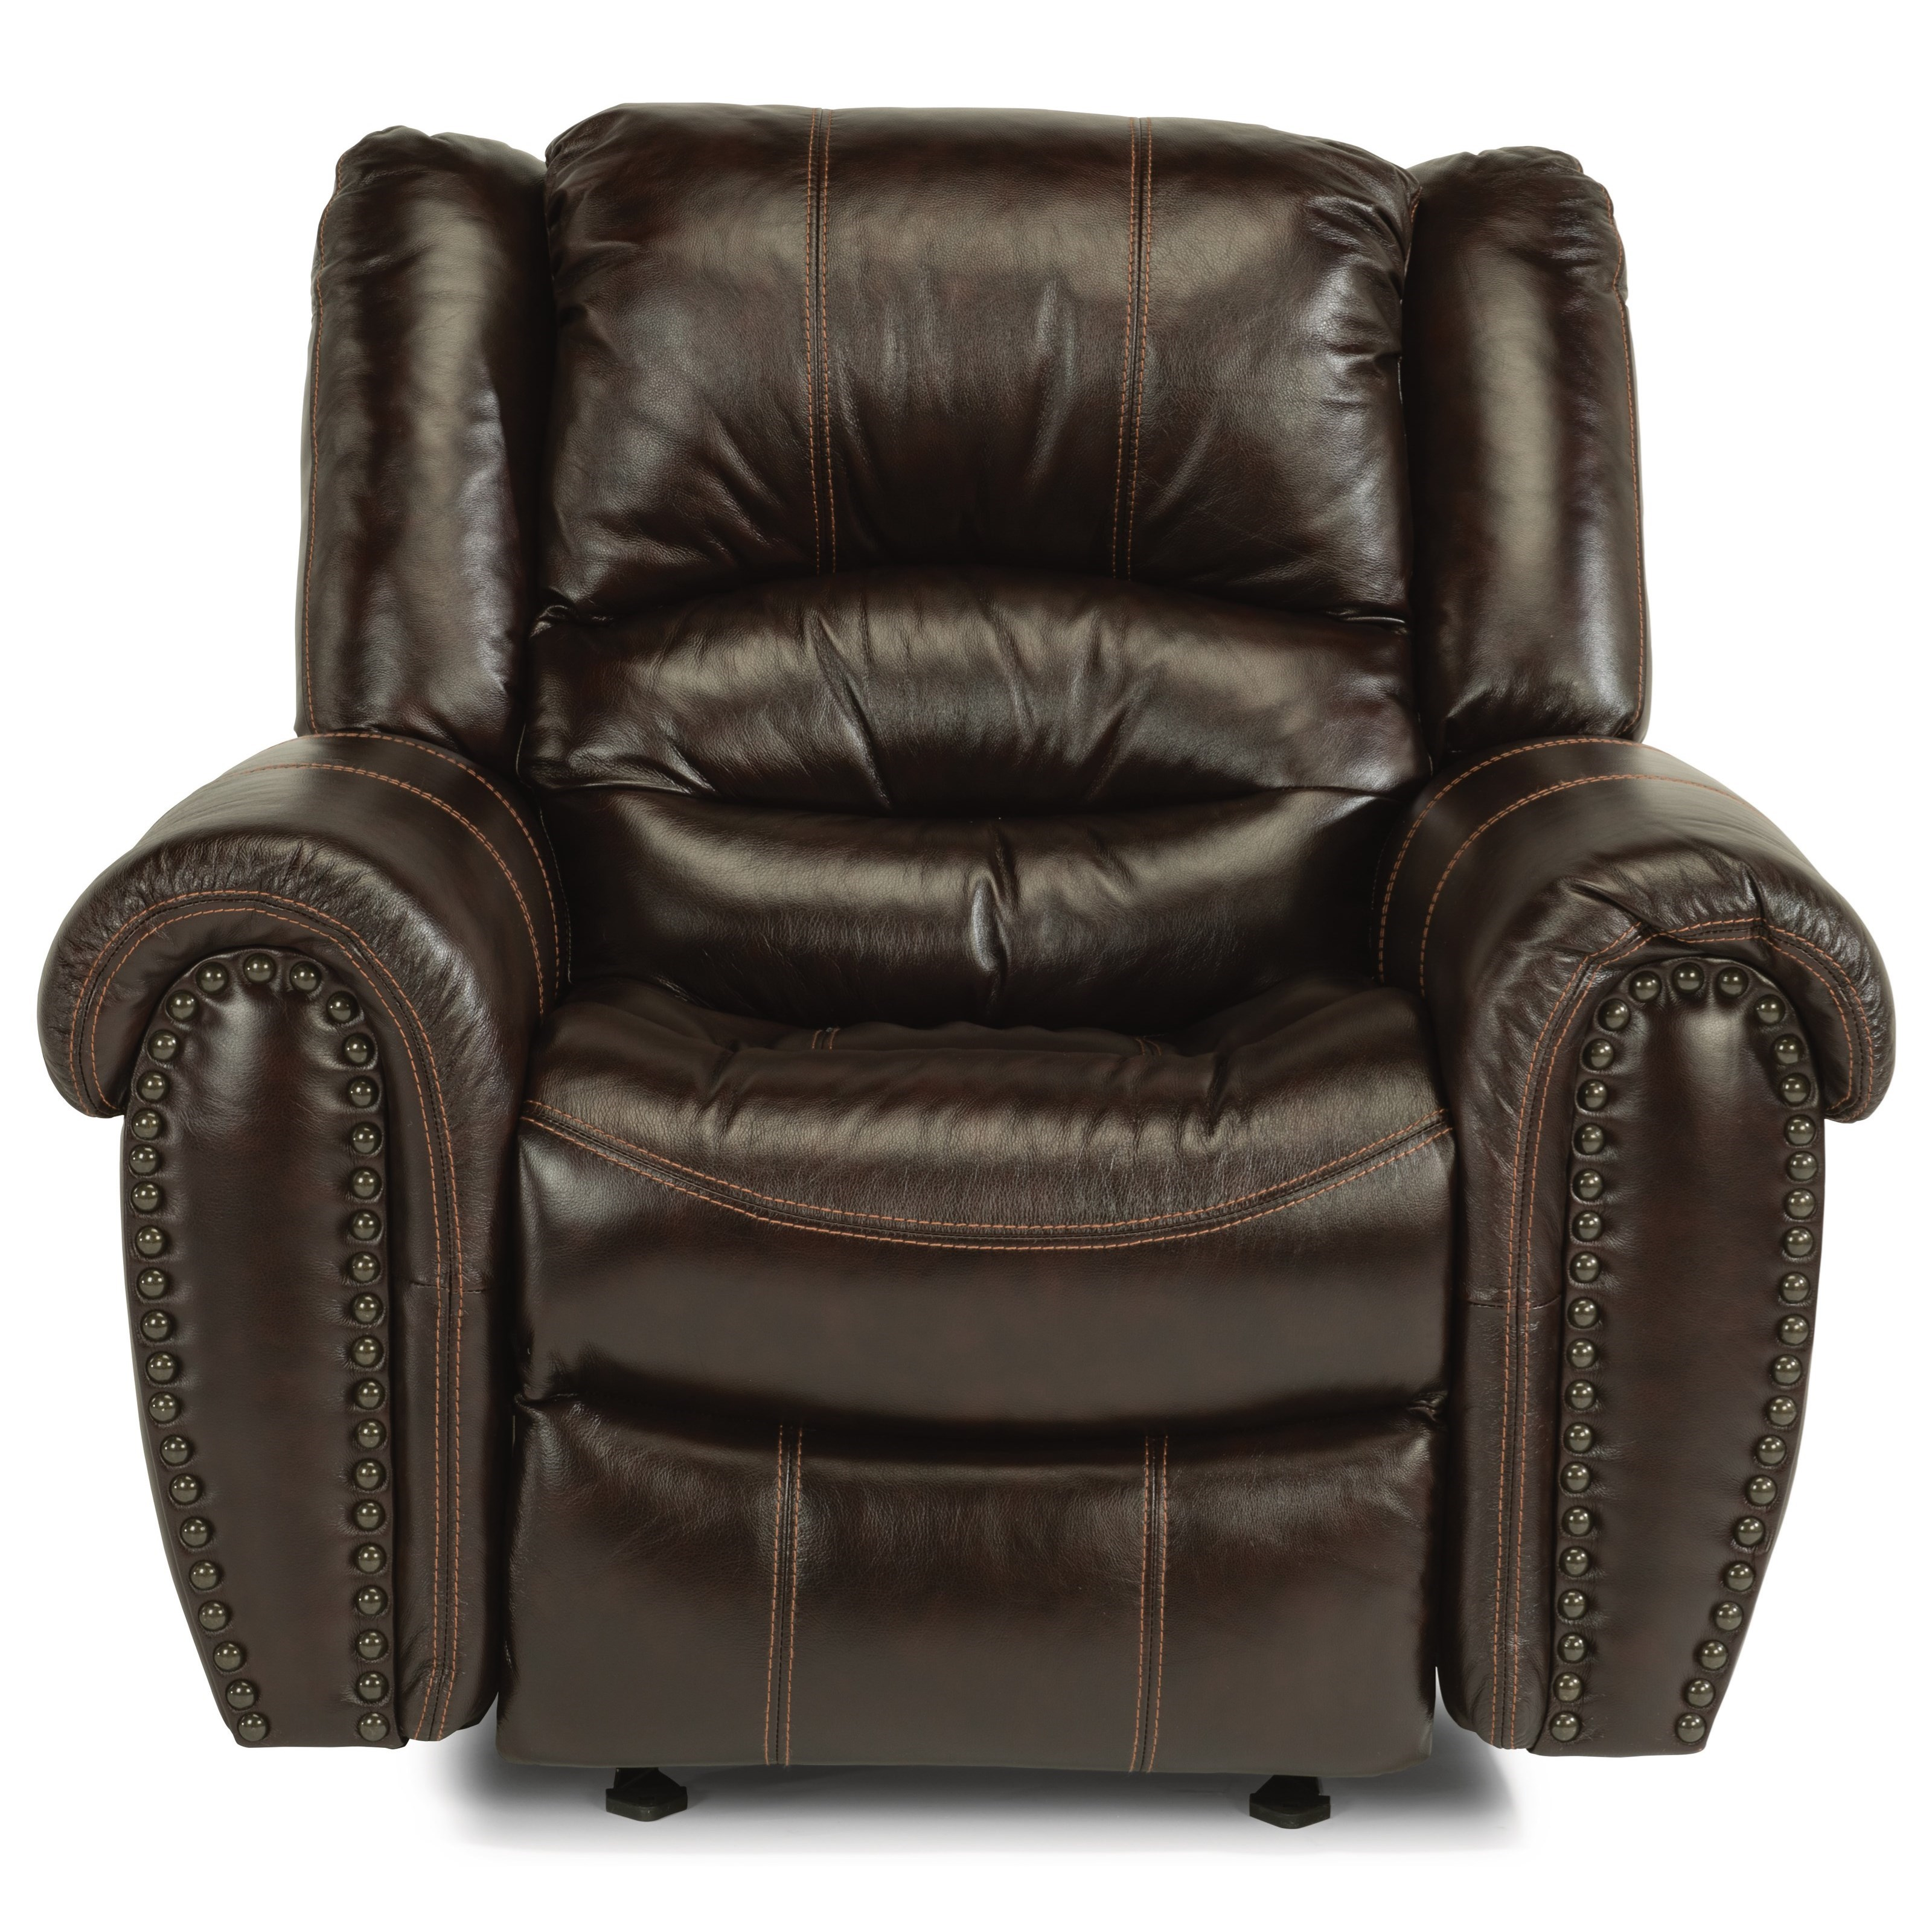 Latitudes - Town Glider Recliner by Flexsteel at Furniture and ApplianceMart